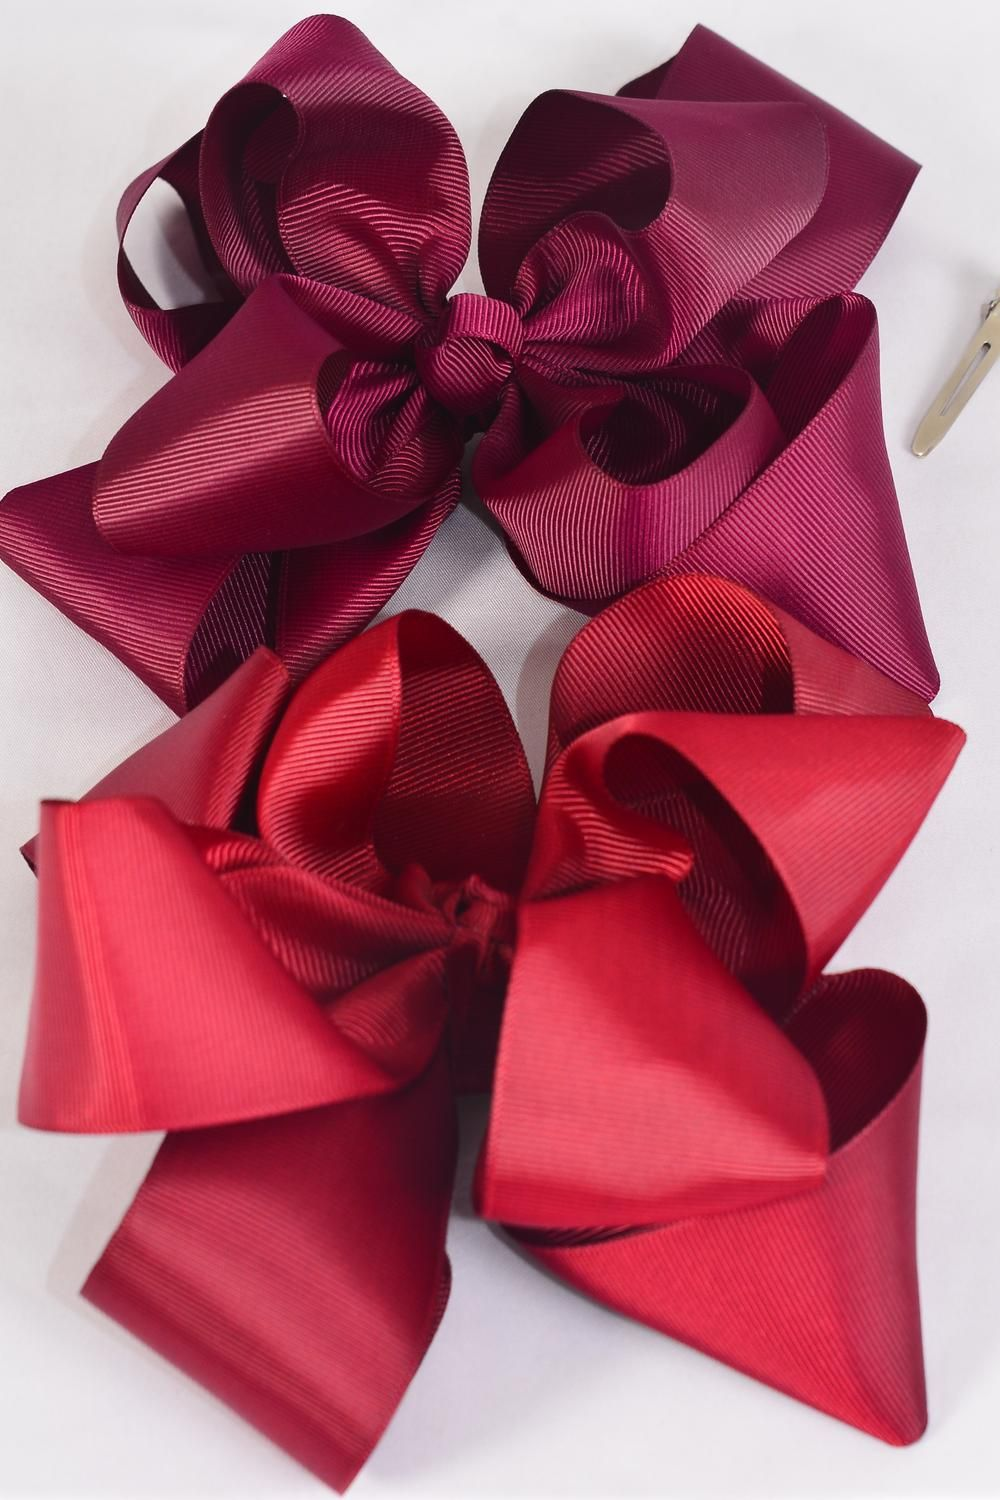 "Hair Bow Jumbo Winemill Cheer Bow Type Double Layer Burgundy Mix/DZ **Burgundy Mix** Alligator Clip,Size-7""x 7"" Wide,6 of each Color Asst,Clip Strip & UPC Code"